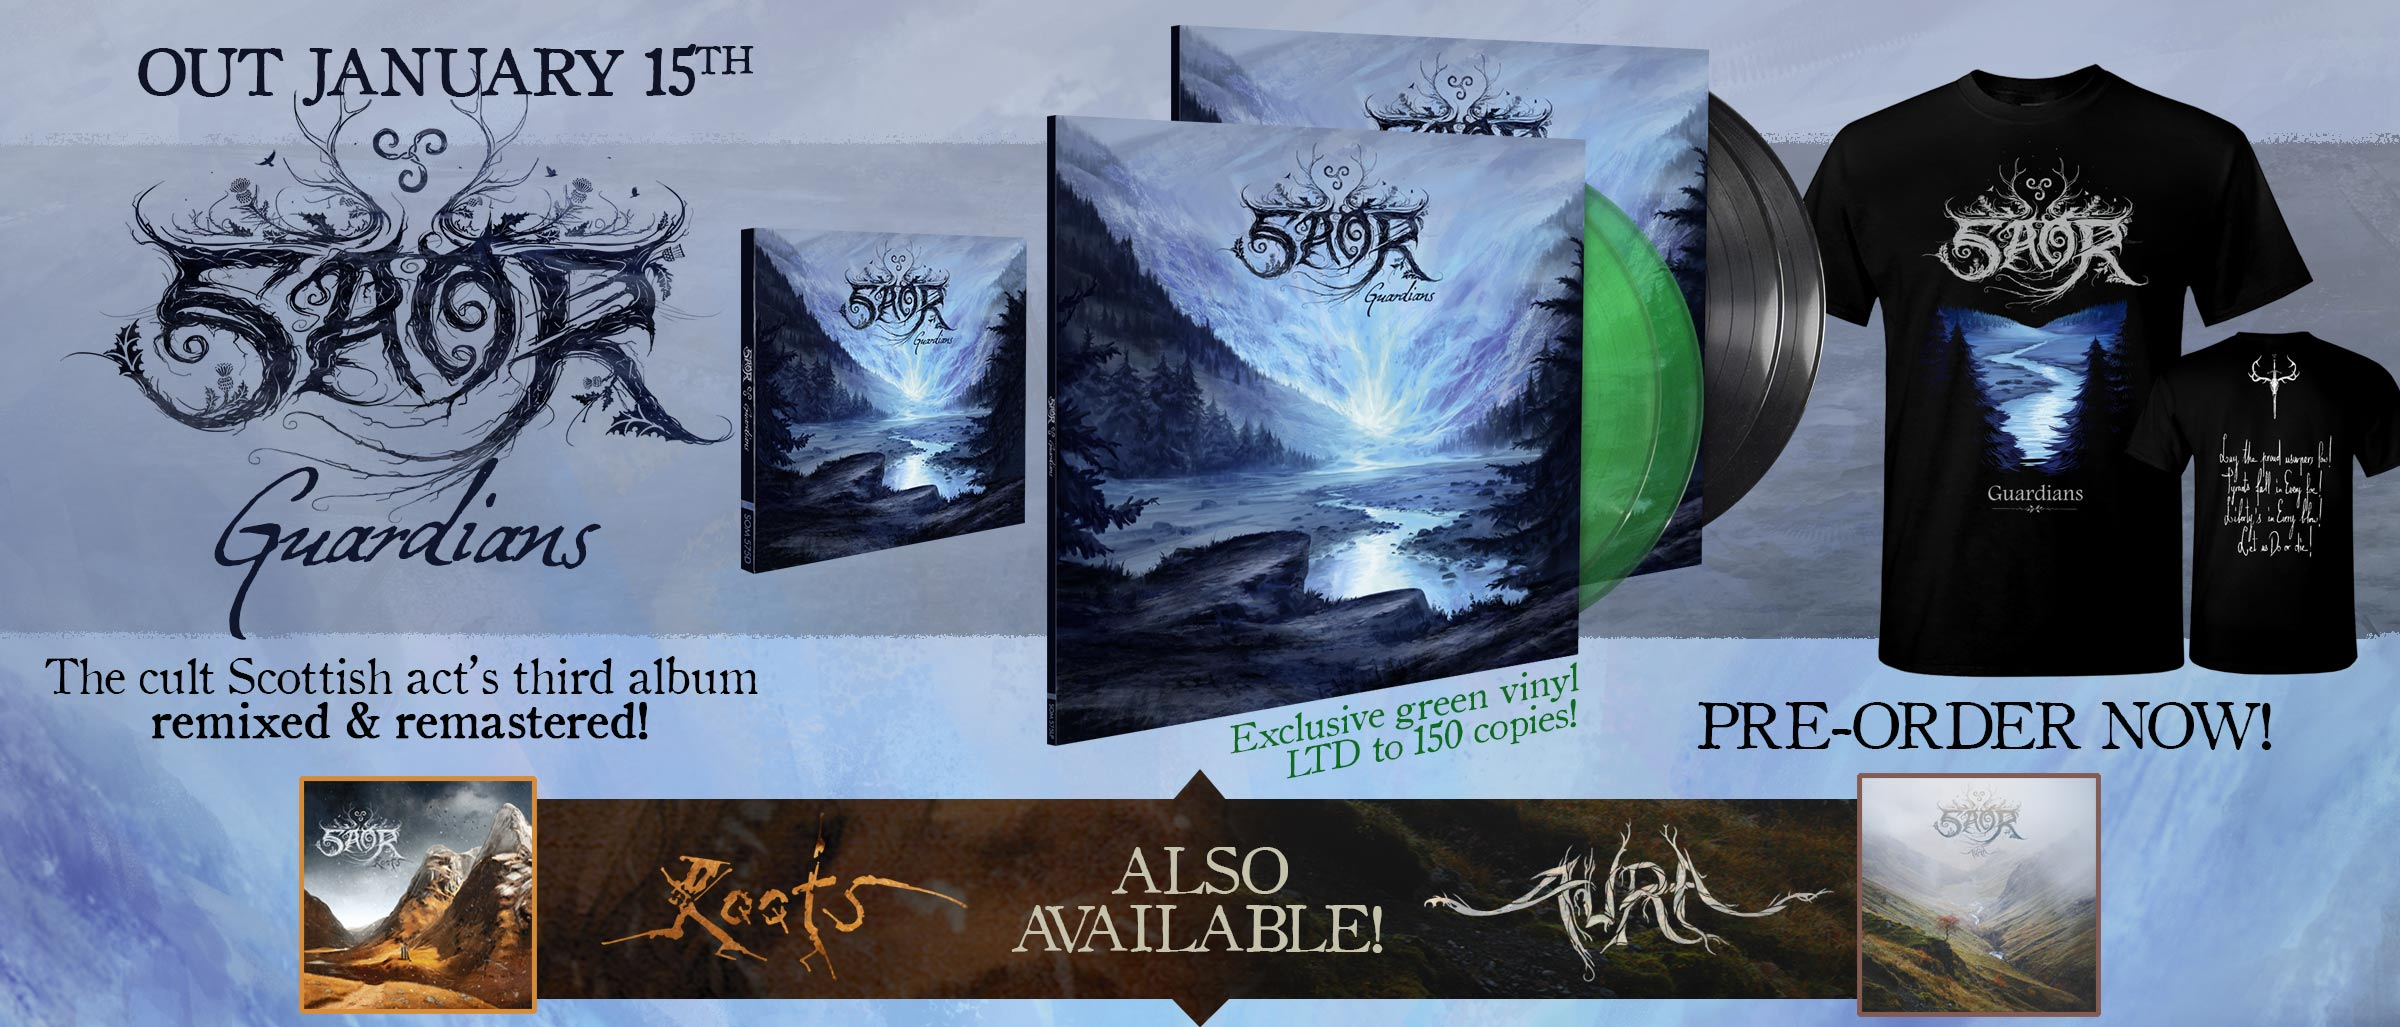 SAOR – Guardians (remixed and remastered)